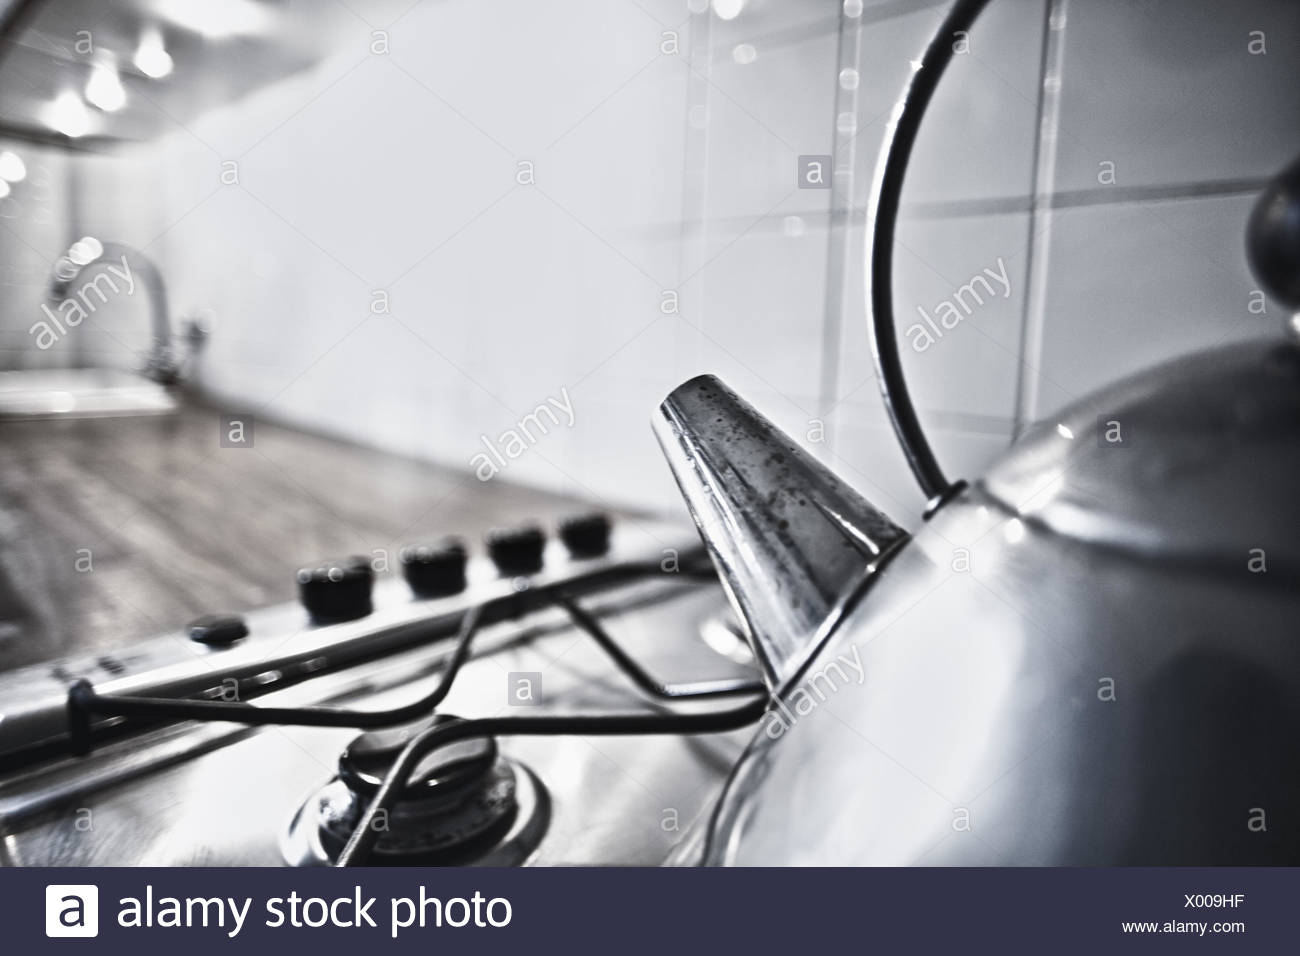 Closein Boiler Boiler On Gas Range Medium Close Up Detail Stock Photo